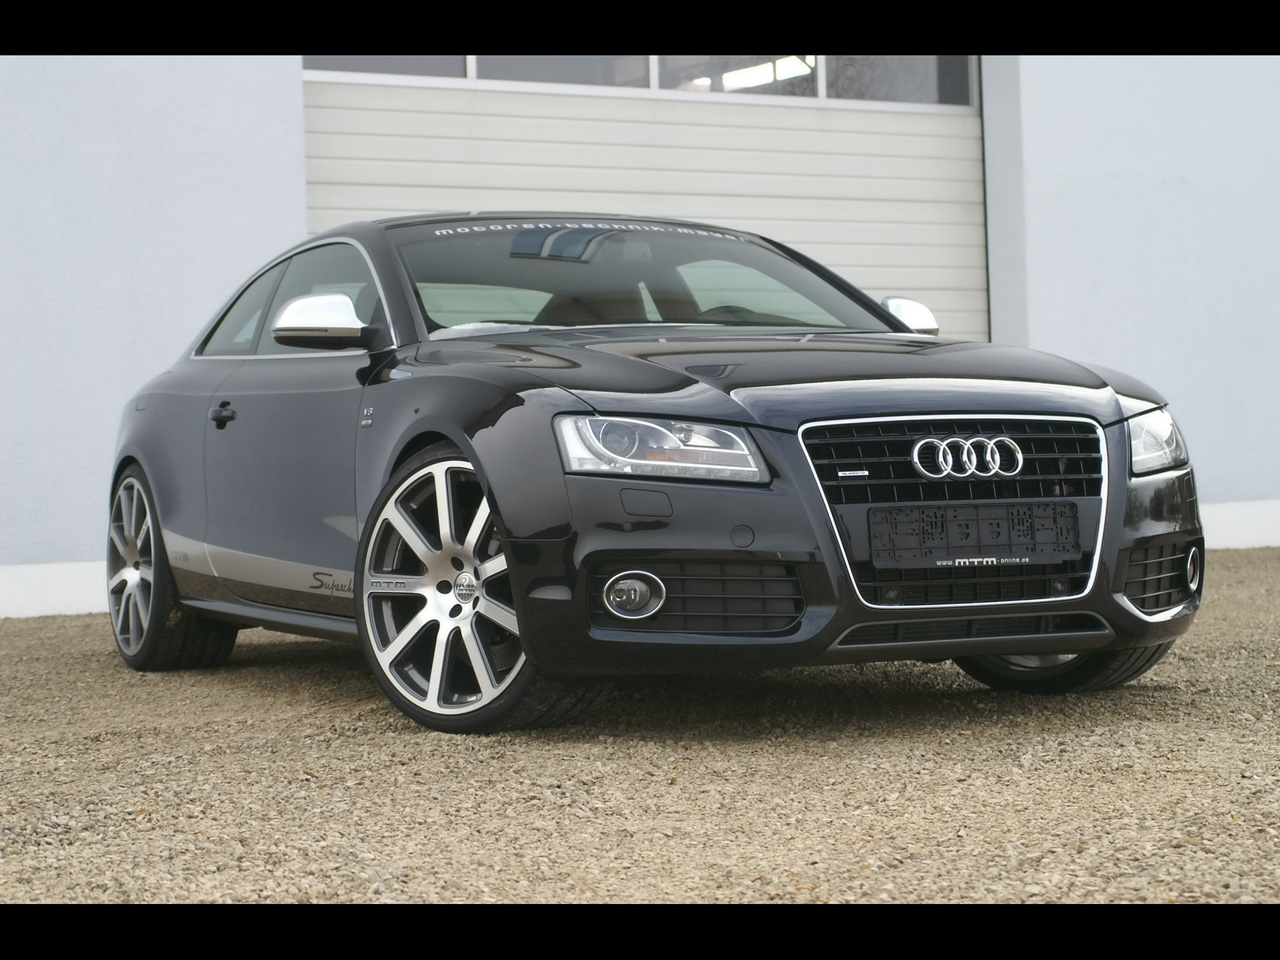 2008-MTM-Audi-S5-GT-Supercharged-Front-Angle-1280x960.jpg